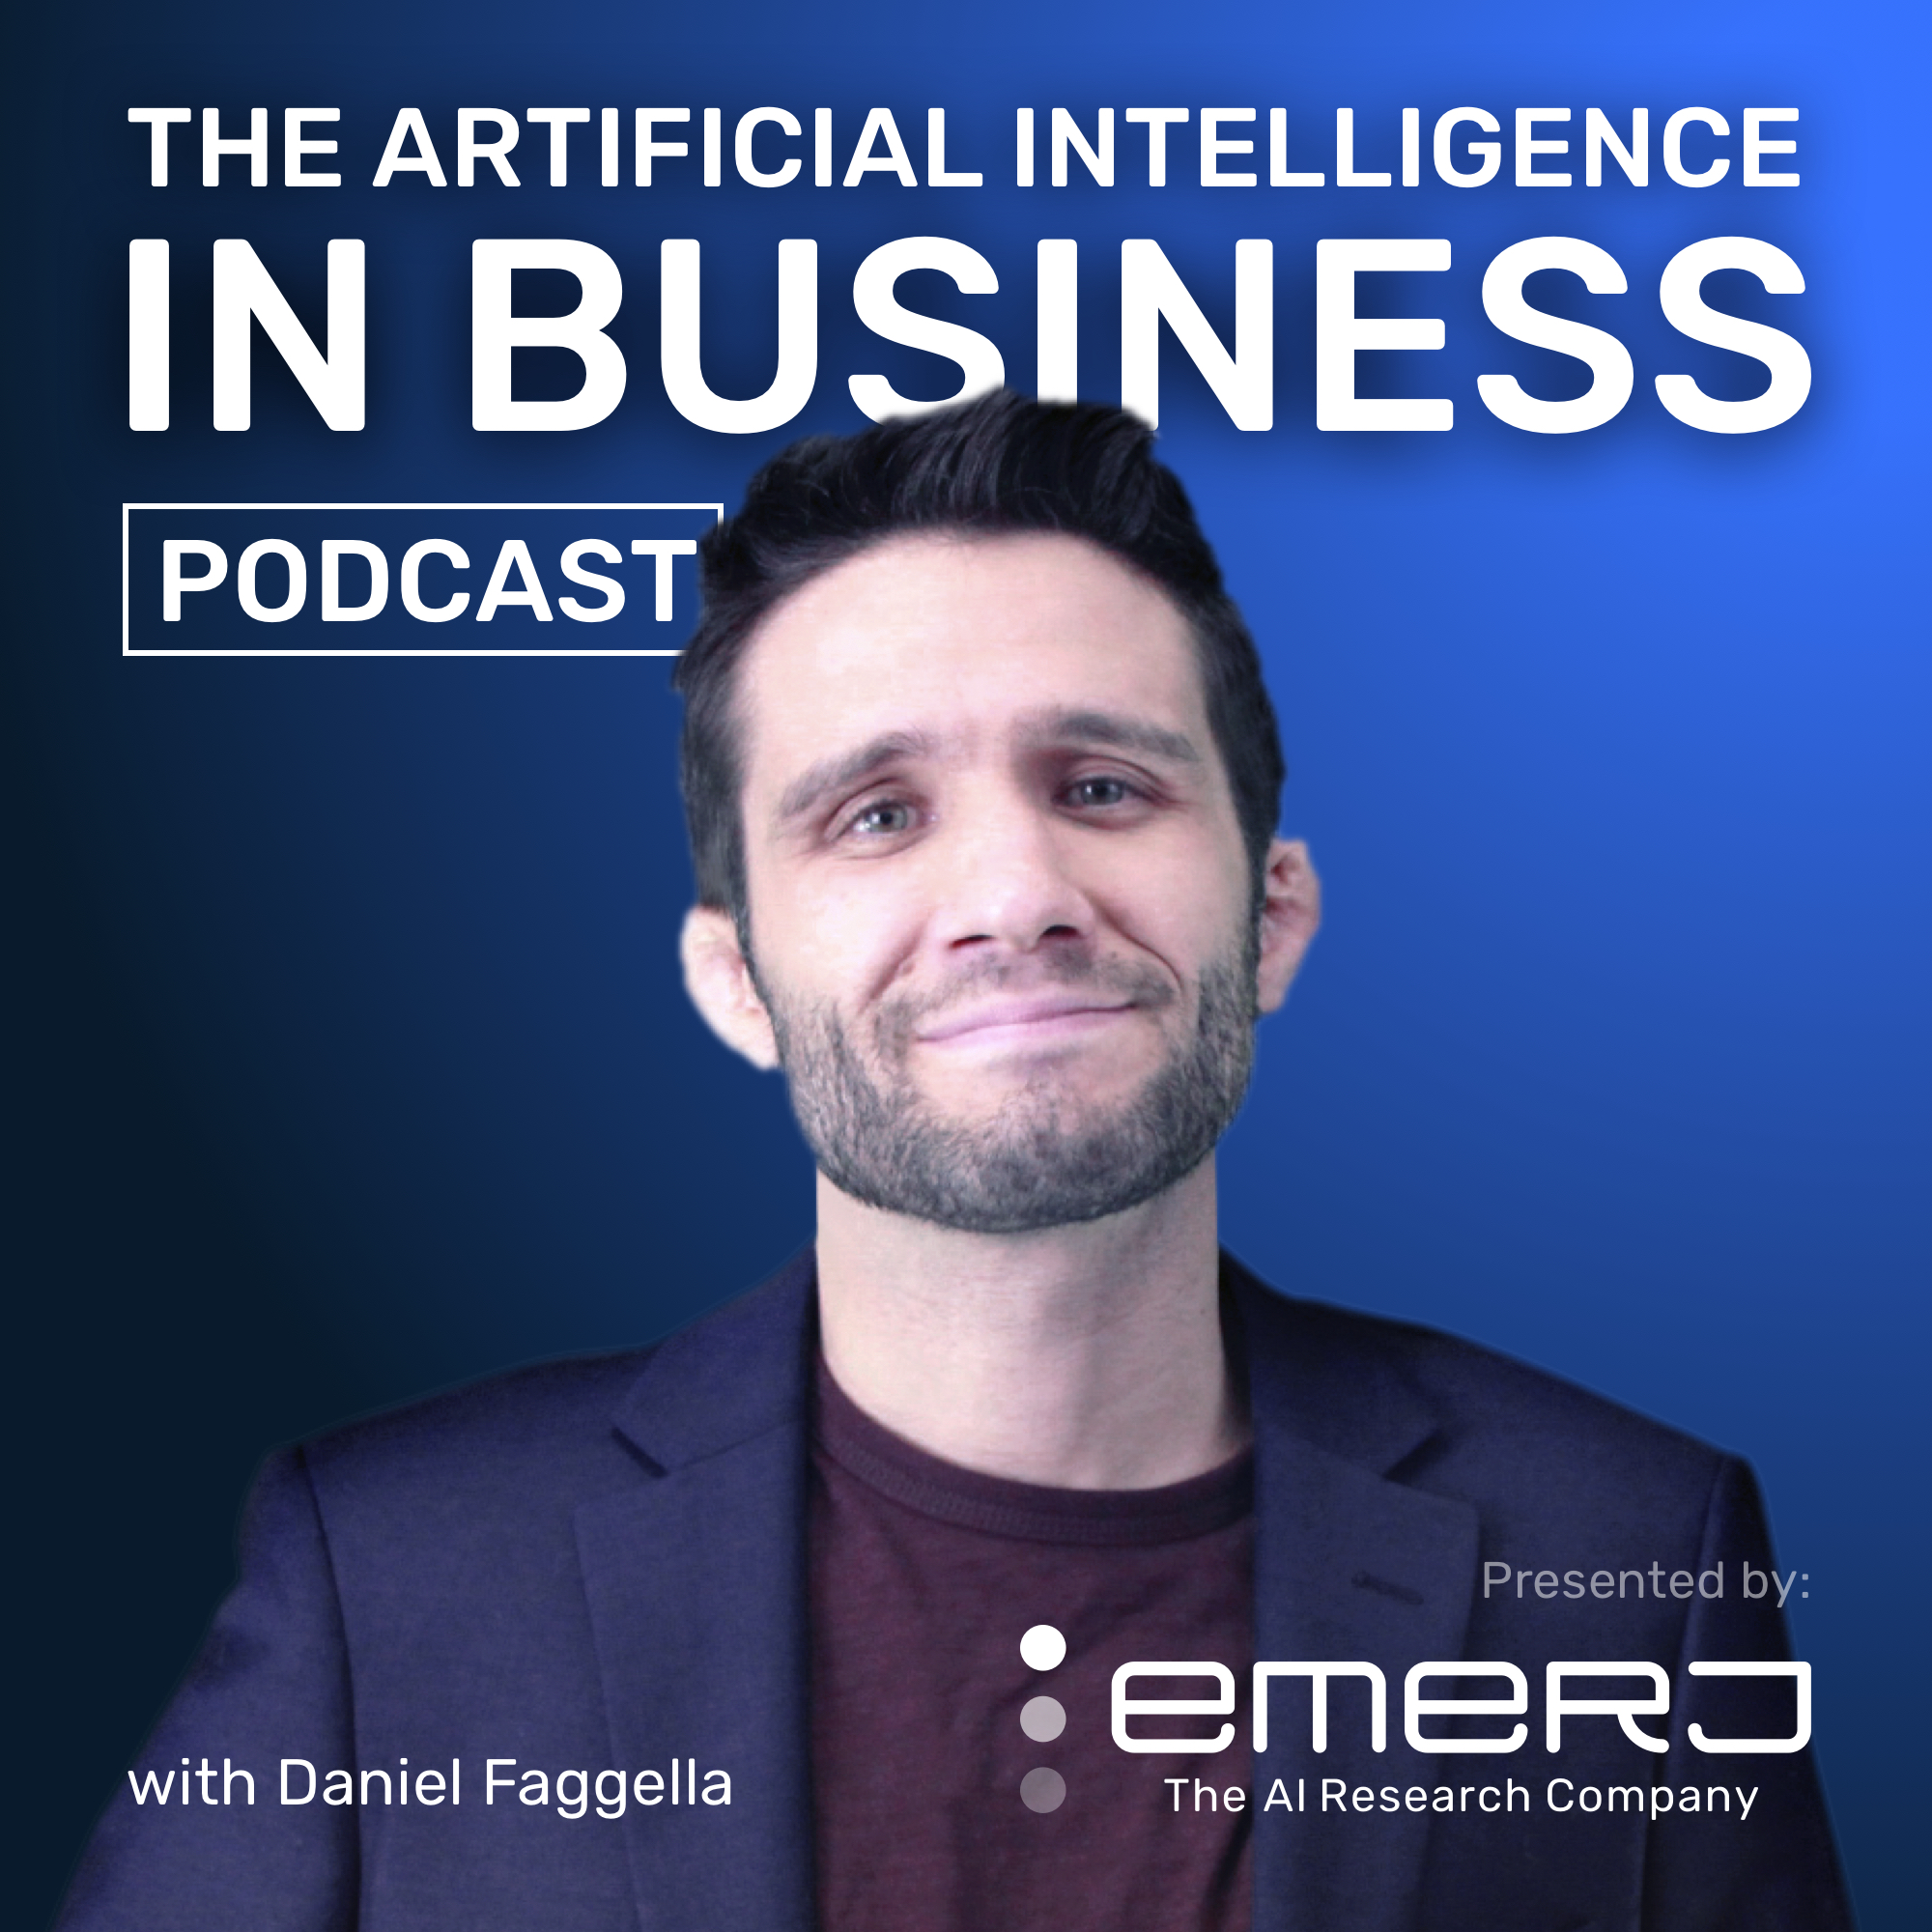 AI in Logistics, Overcoming Data Challenges and Finding Value - with Priya Rajagopalan of FourKites